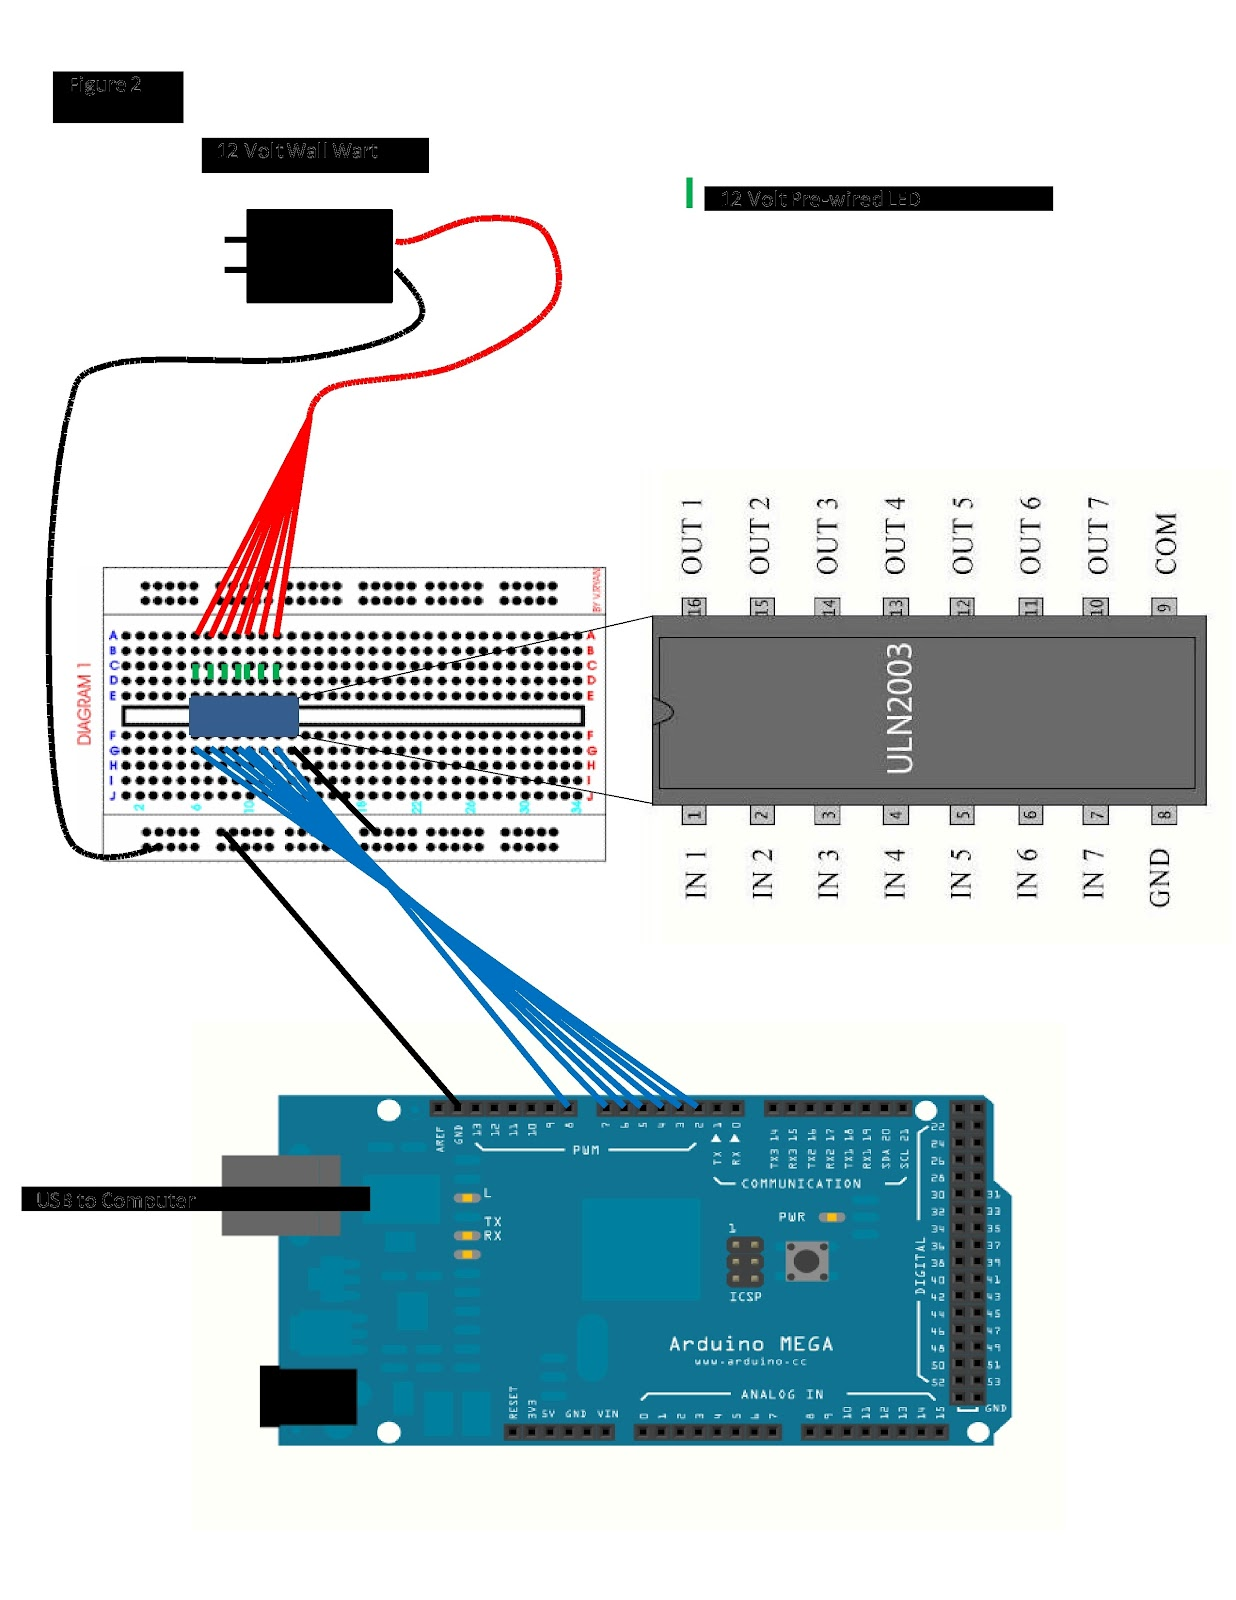 Arduino mega 2560 schematic diagram